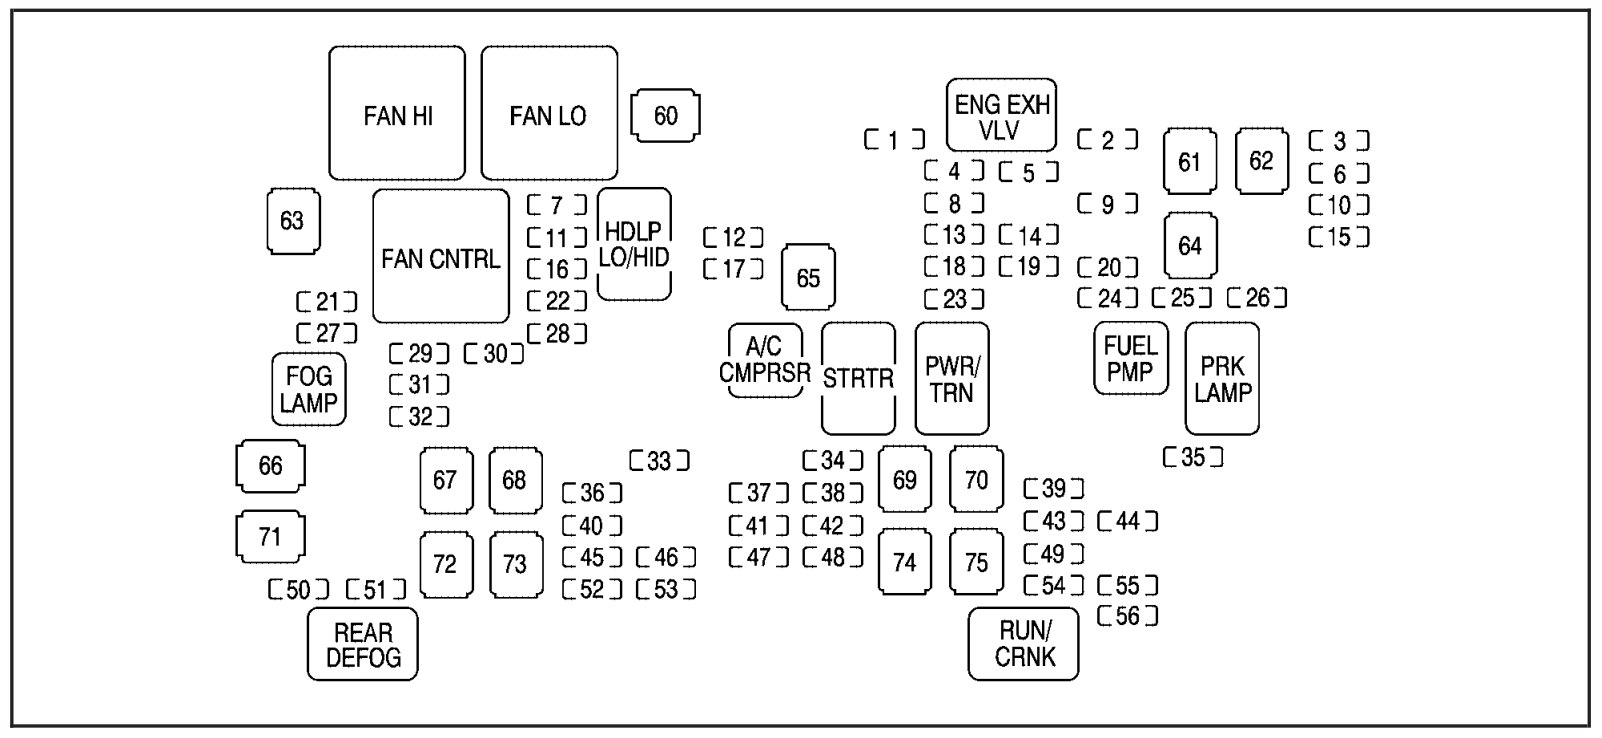 2007 yukon xl fuse diagram wiring diagram explained rh 8 11 corruptionincoal org gmc yukon fuse box diagram 2007 gmc yukon fuse diagram